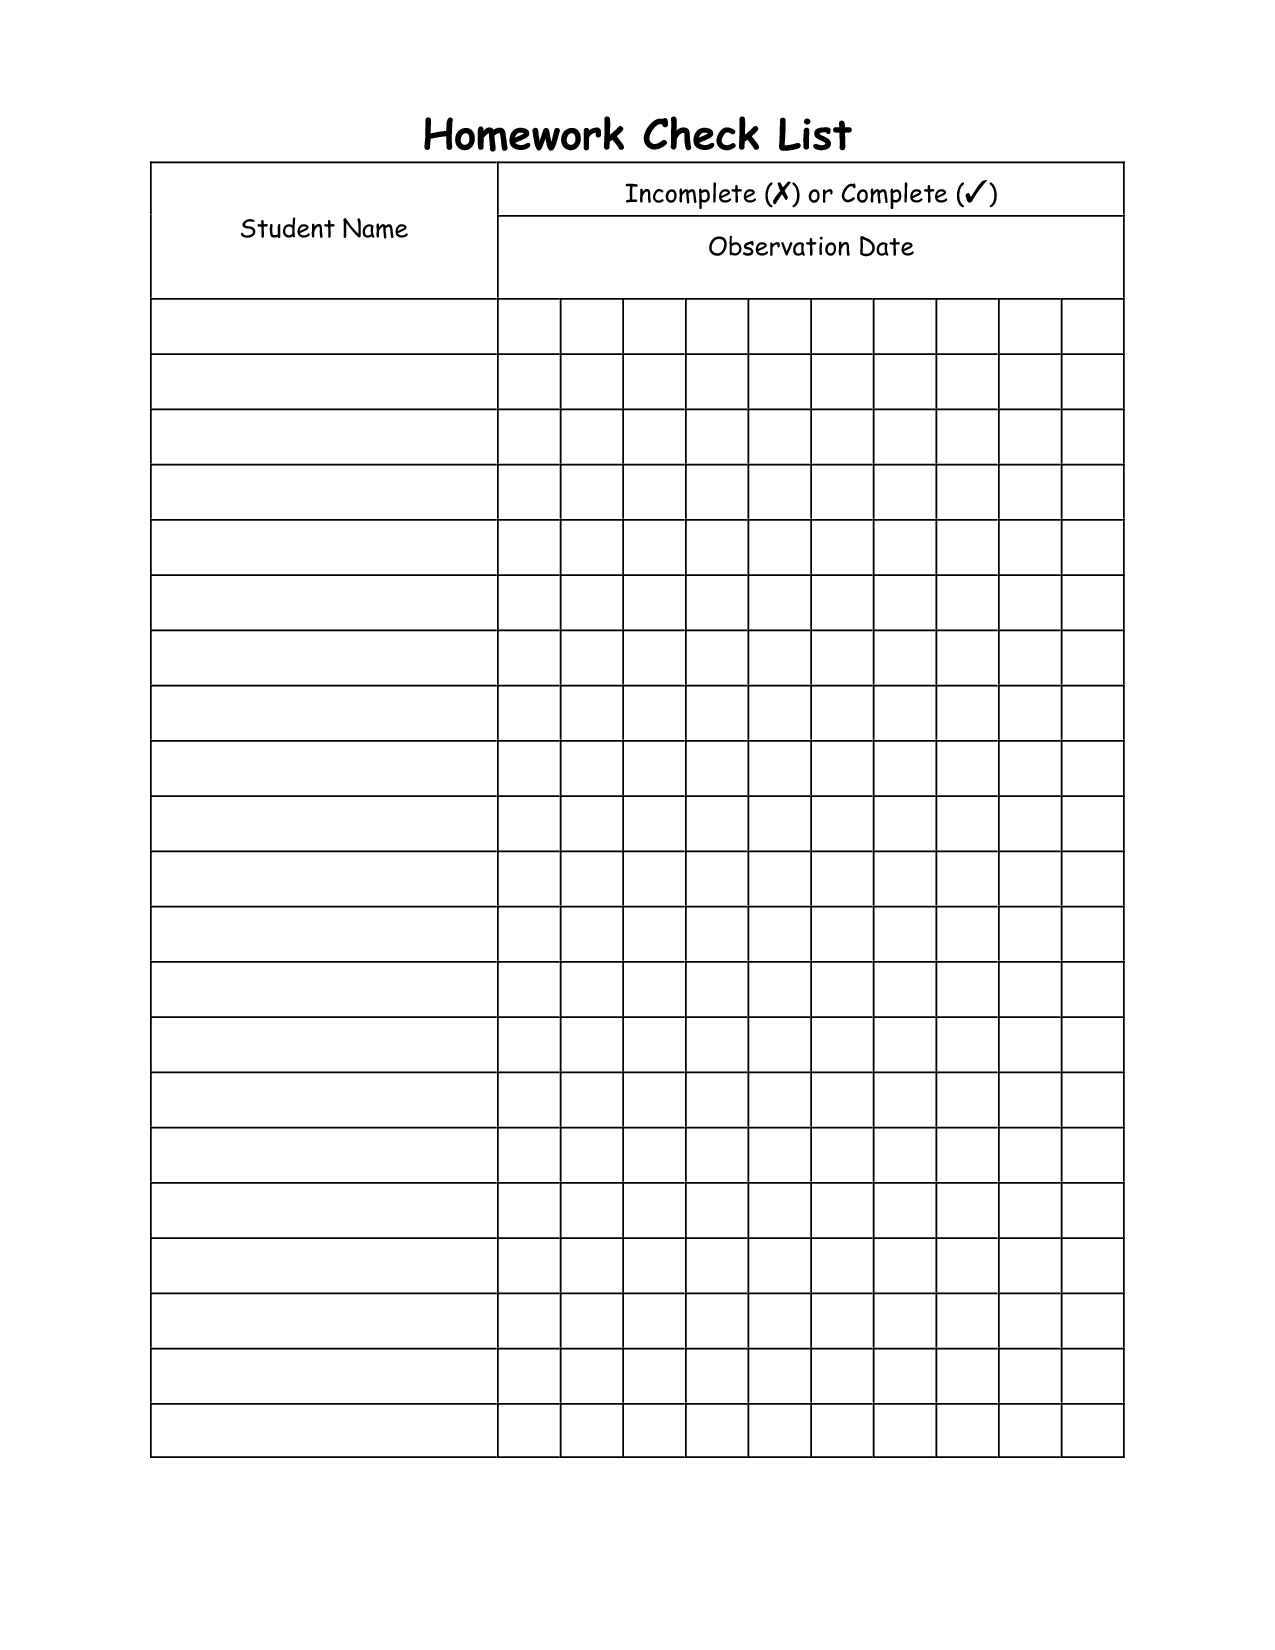 Homework Checklist | Homework Check List Incomplete X Or Complete T within 1St Grade Homework Chart Templates